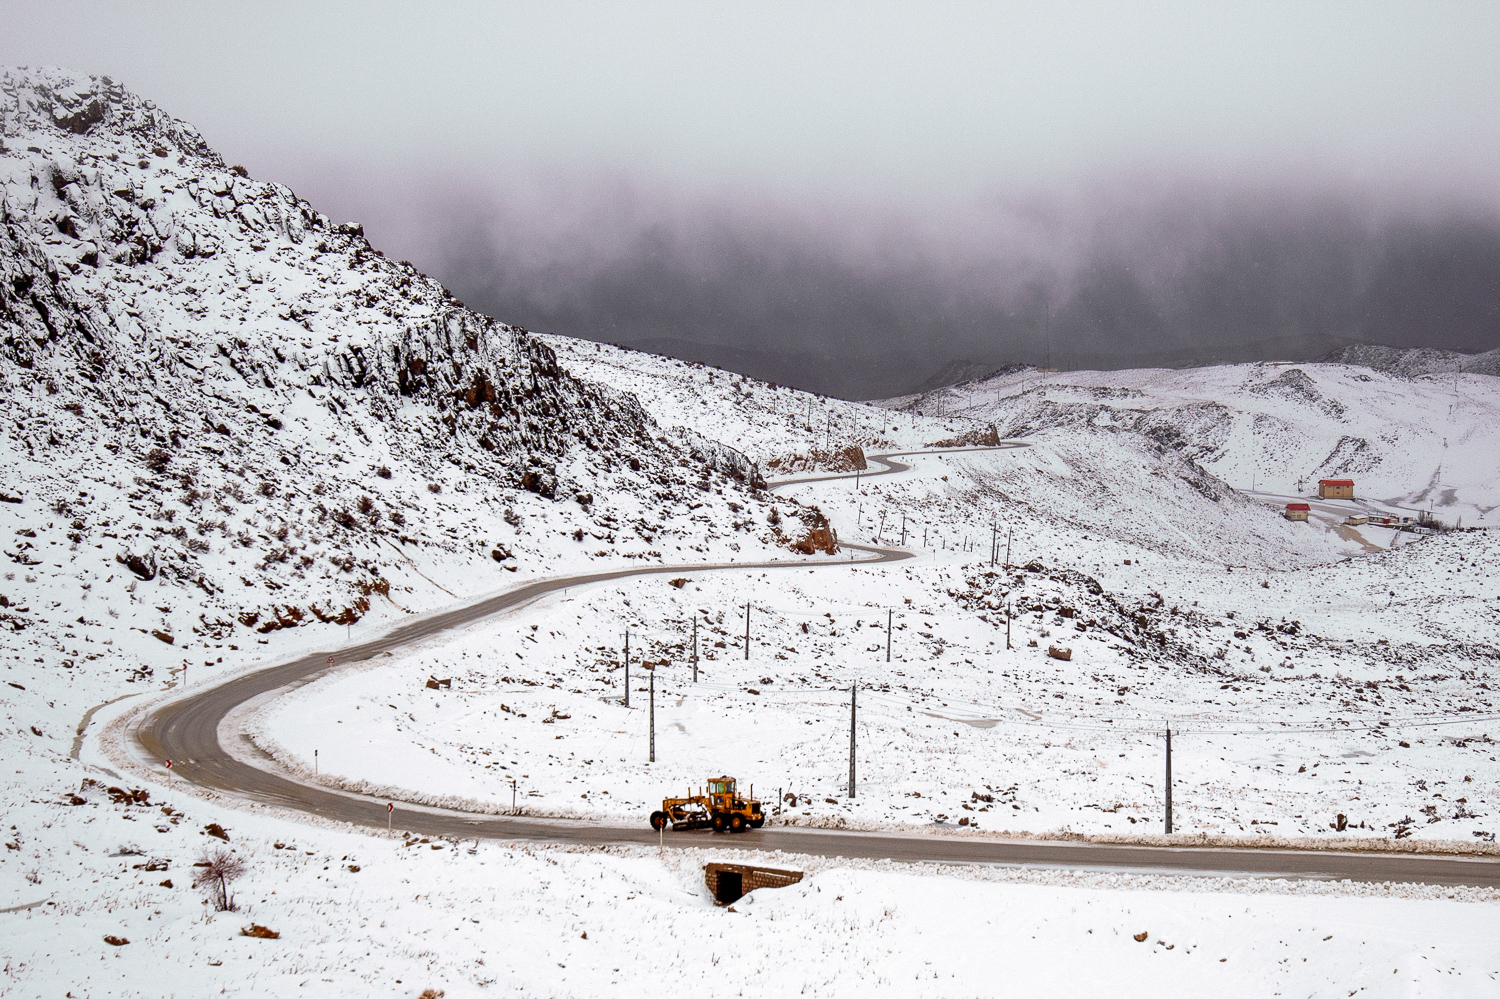 Winding roads are clean for traffic as a result of Hamid, Ismaeil and their colleagues' hard work!